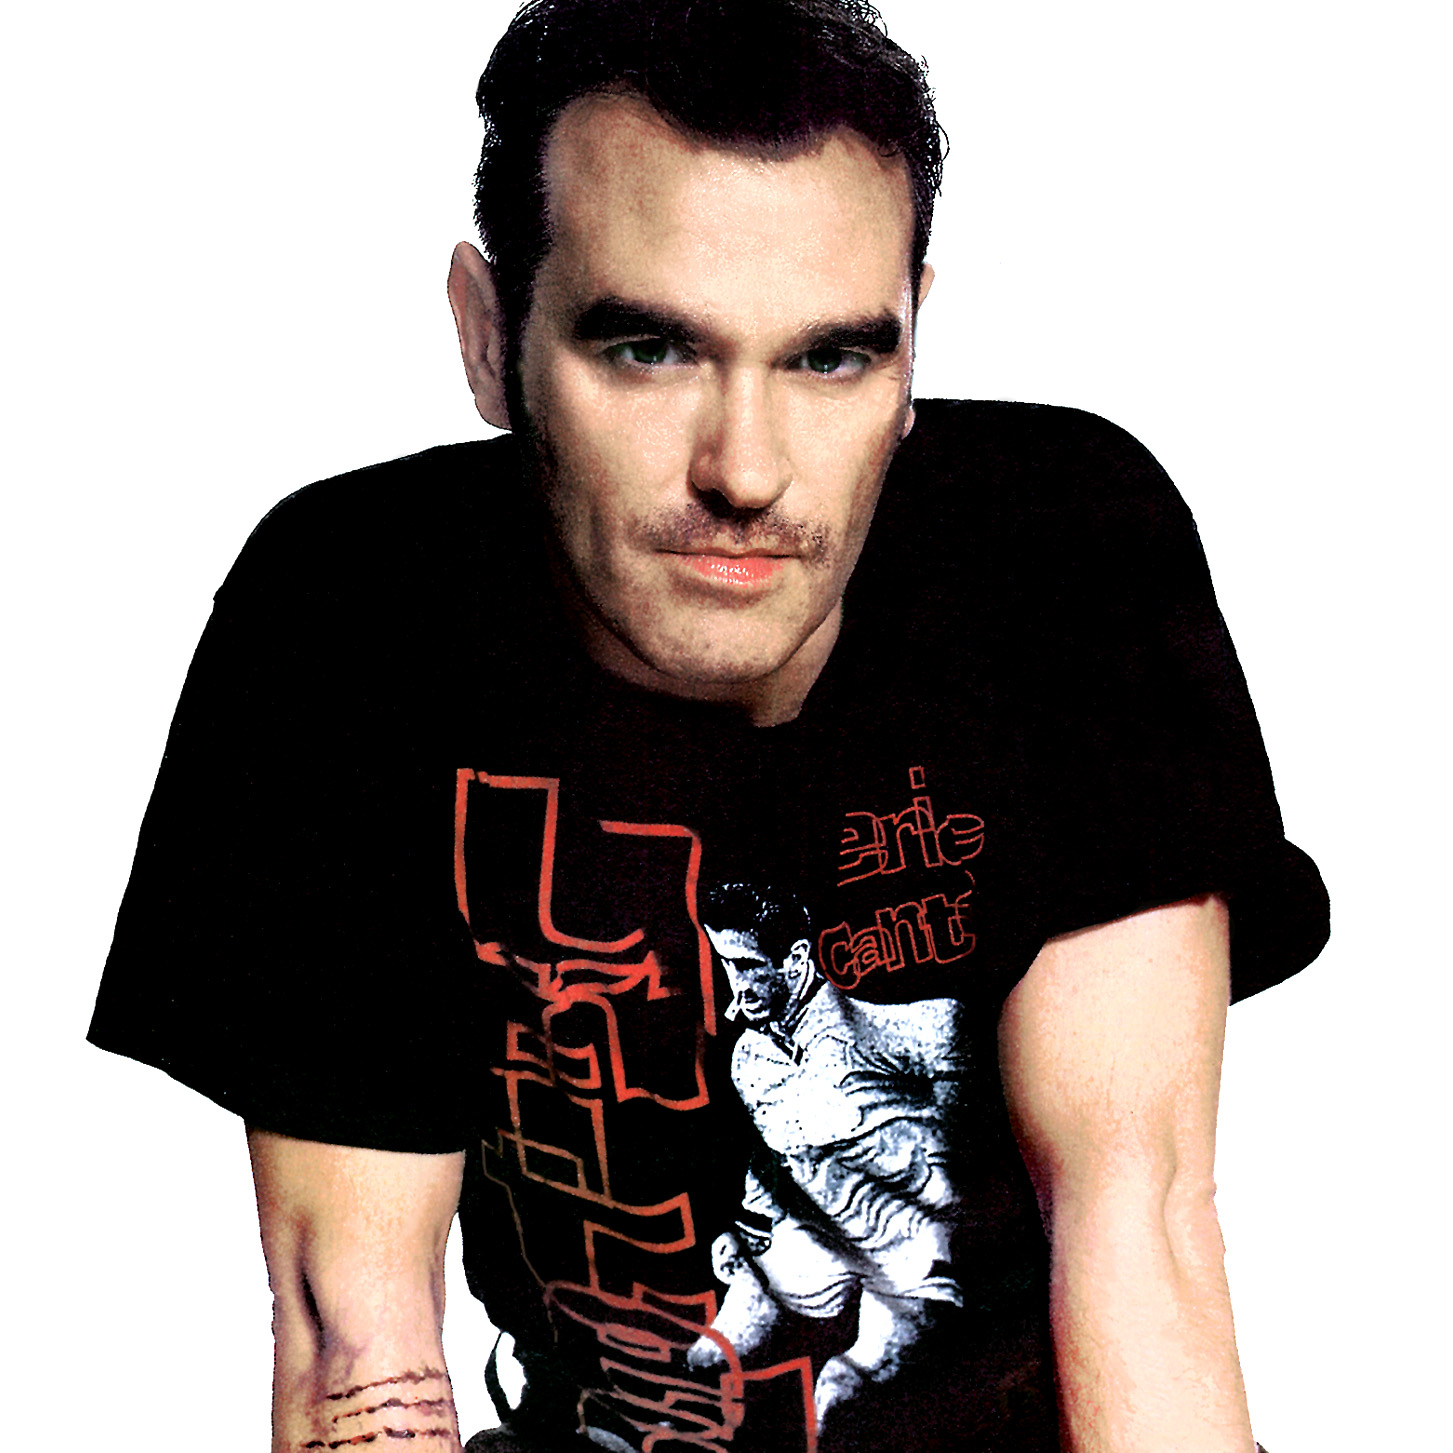 Morrissey wearing Cantona tee shirt Picture from www.morrissey-solo.com